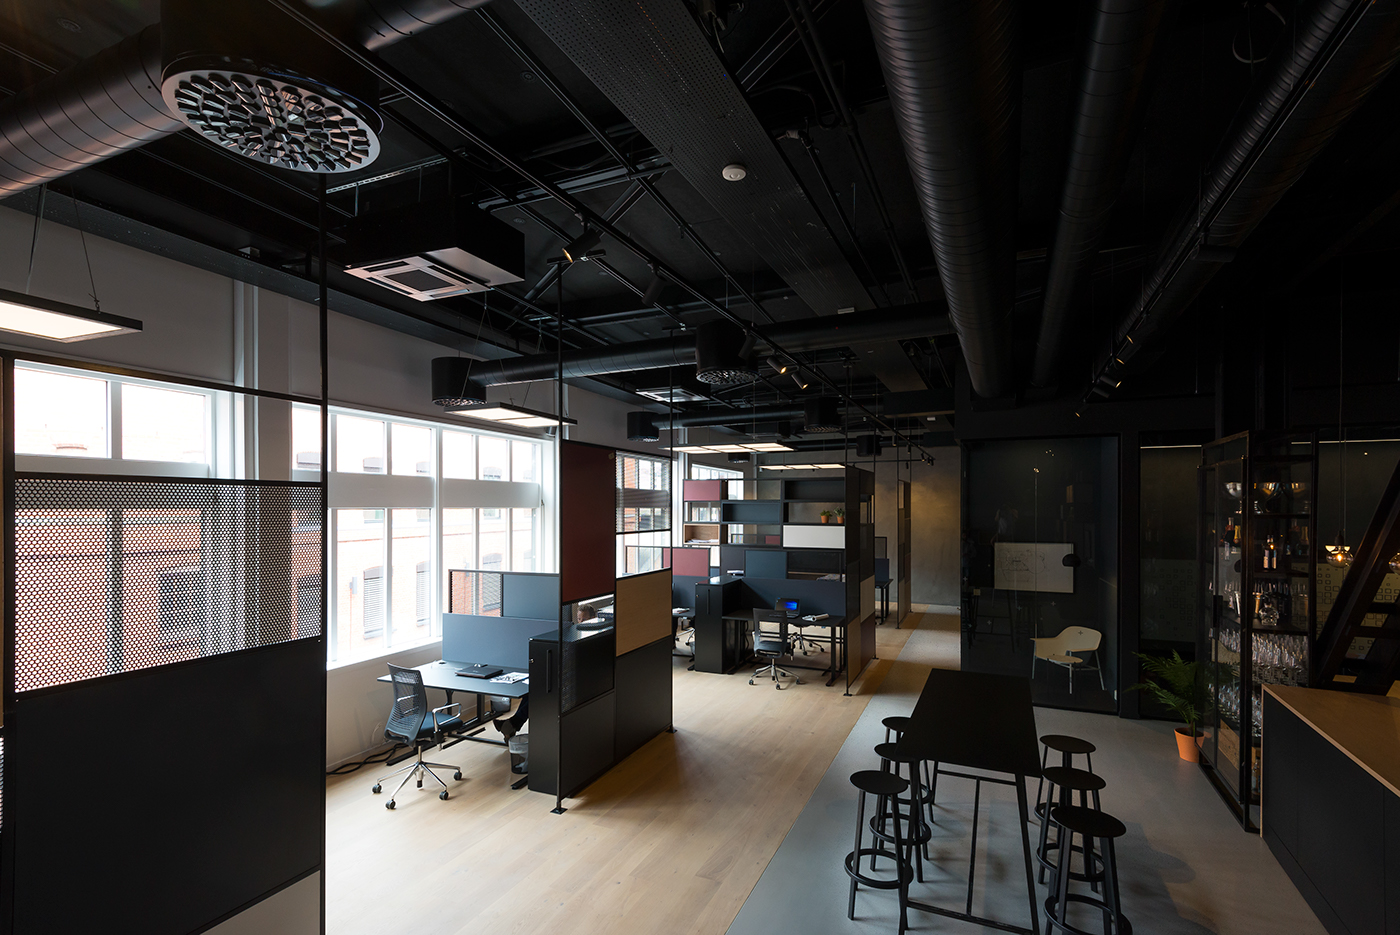 The Office Interior Design In Oslo That Is Going To Make You Create office interior design The Office Interior Design In Oslo That Is Going To Make You Create The Office Interior Design In Oslo That Is Going To Make You Create 6